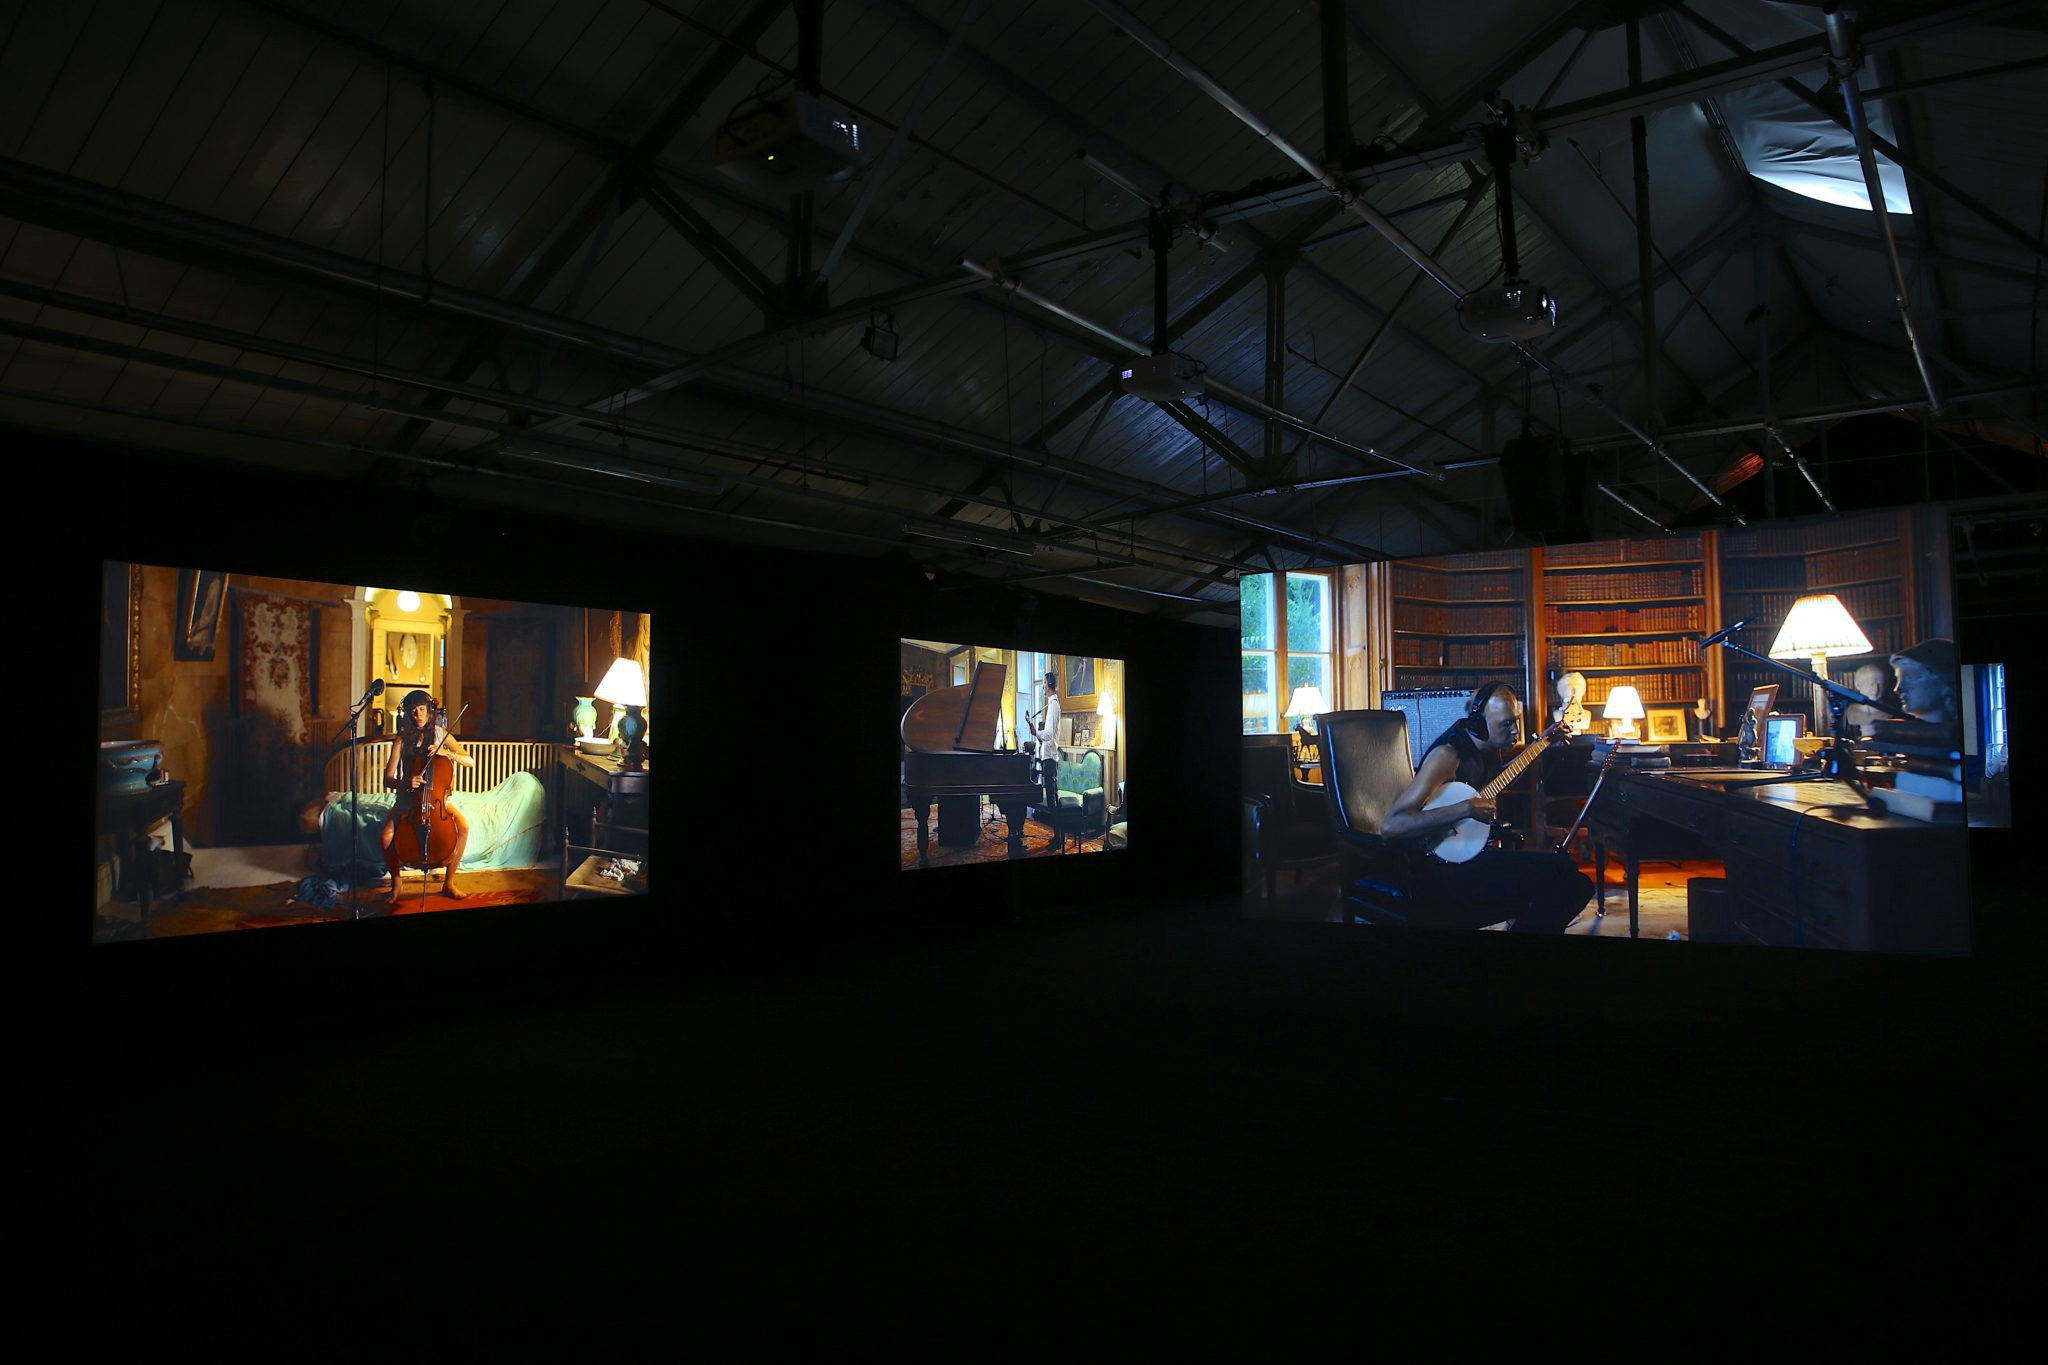 Blacked out room hosting several large projector screens showing musicians playing alone in separate rooms.